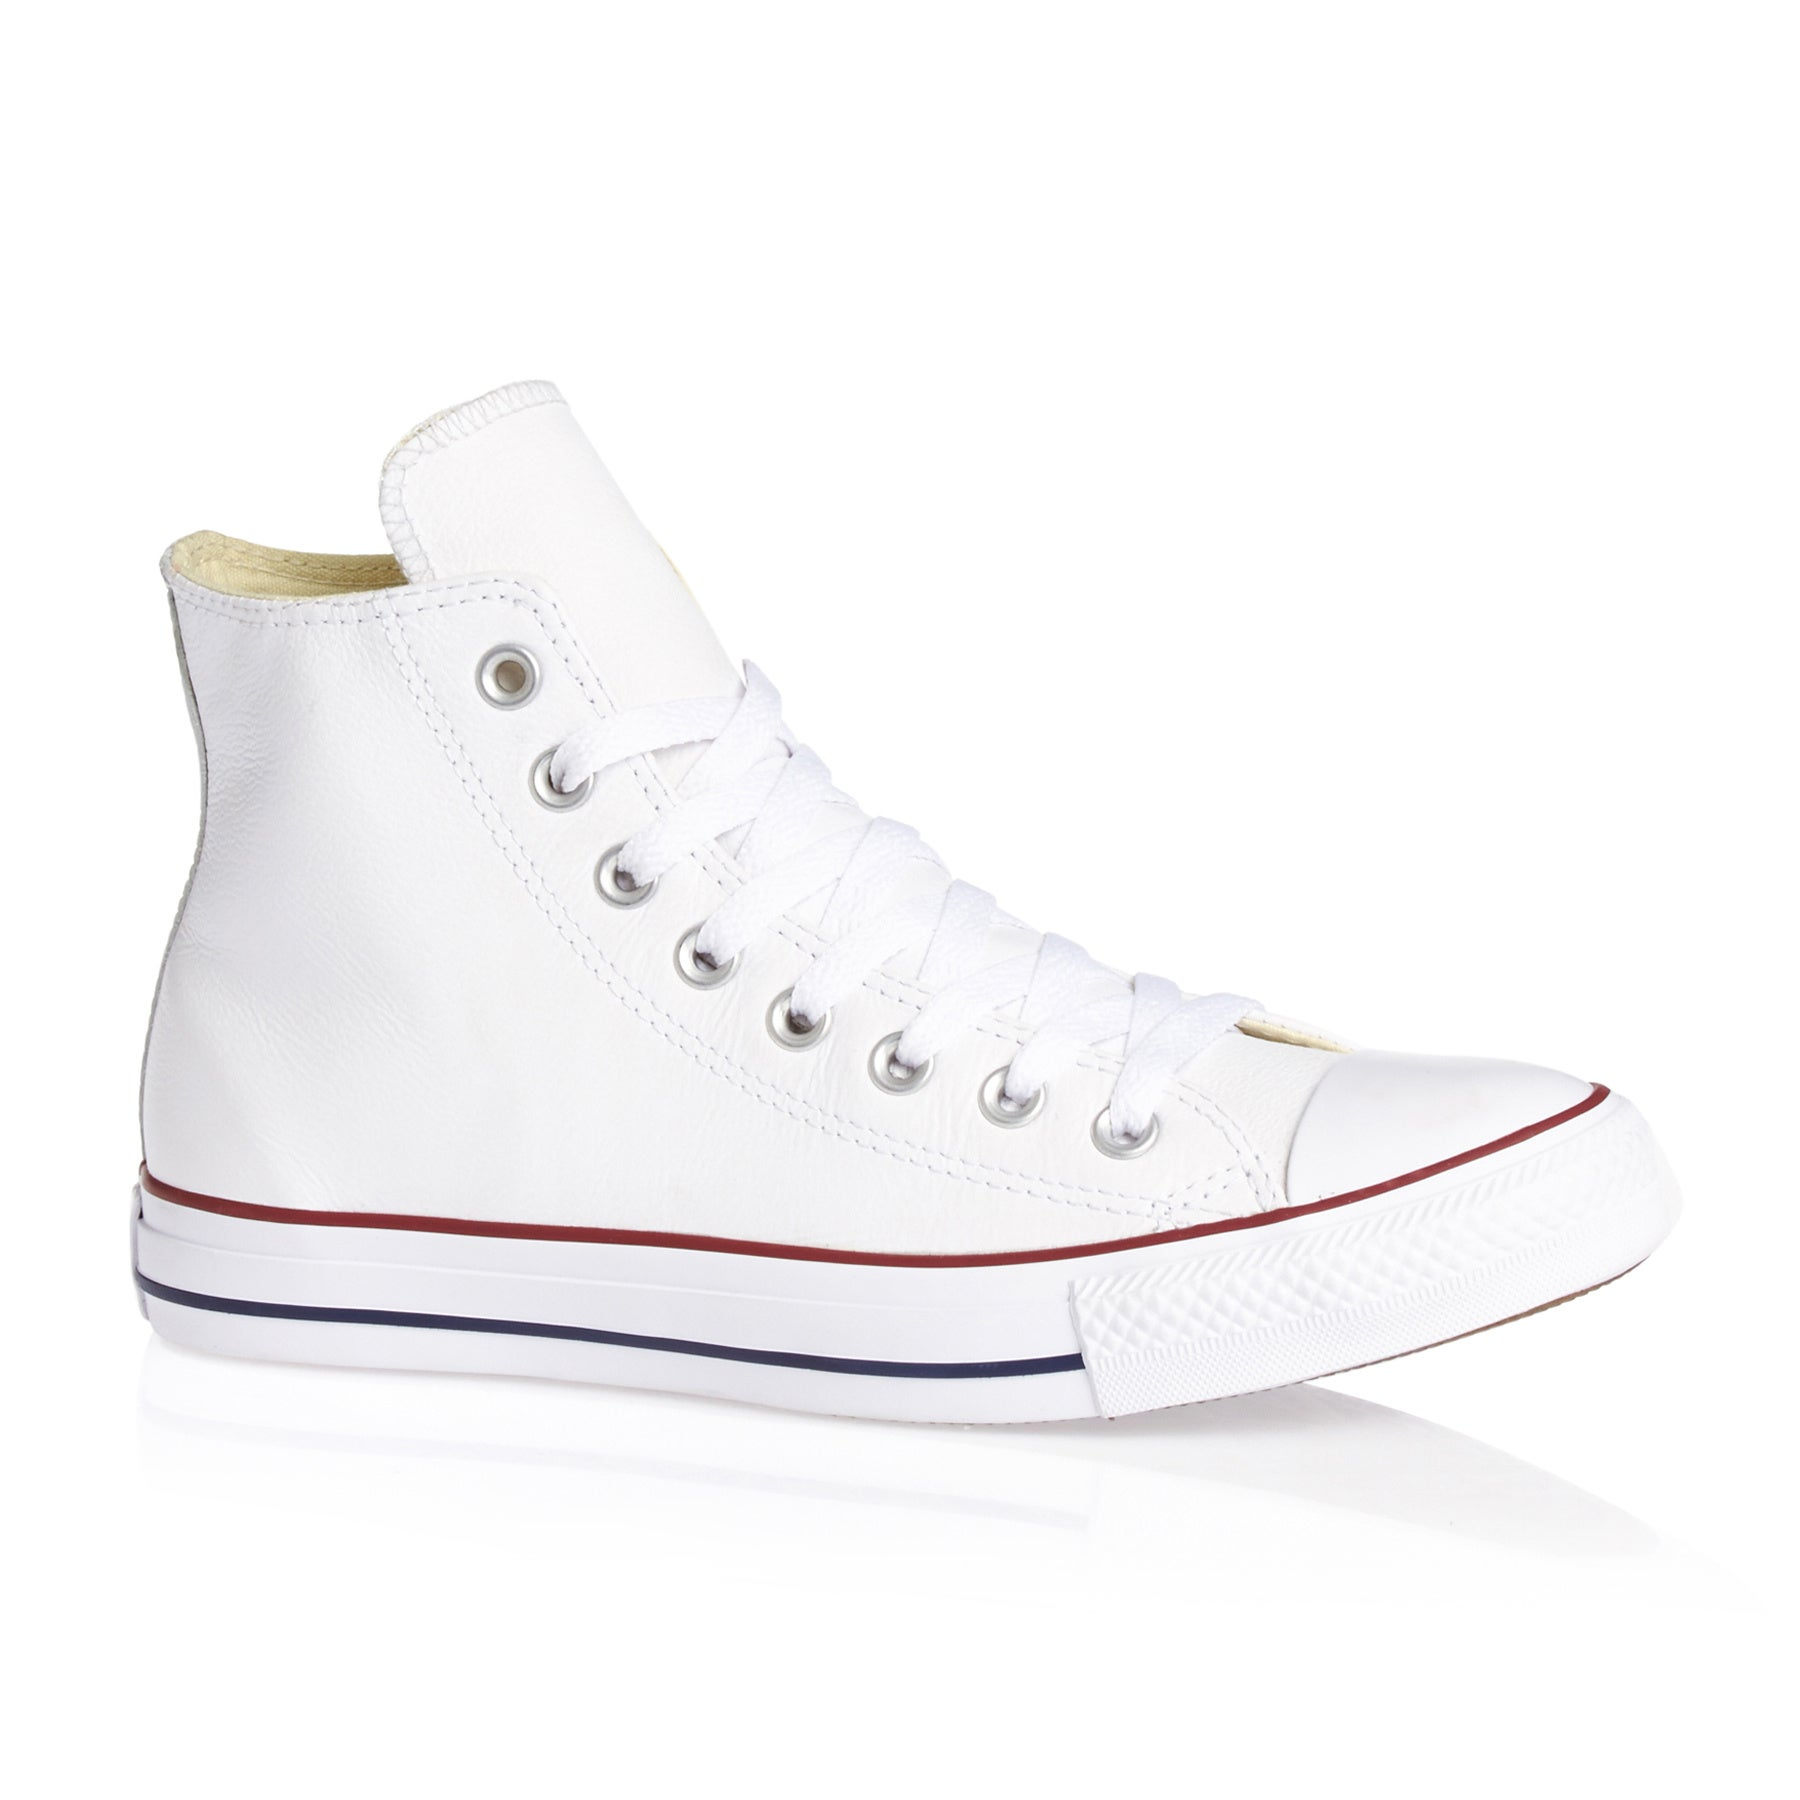 a17149c71ae3 Converse Chuck Taylor All Stars Hi Leather Shoes available from Surfdome